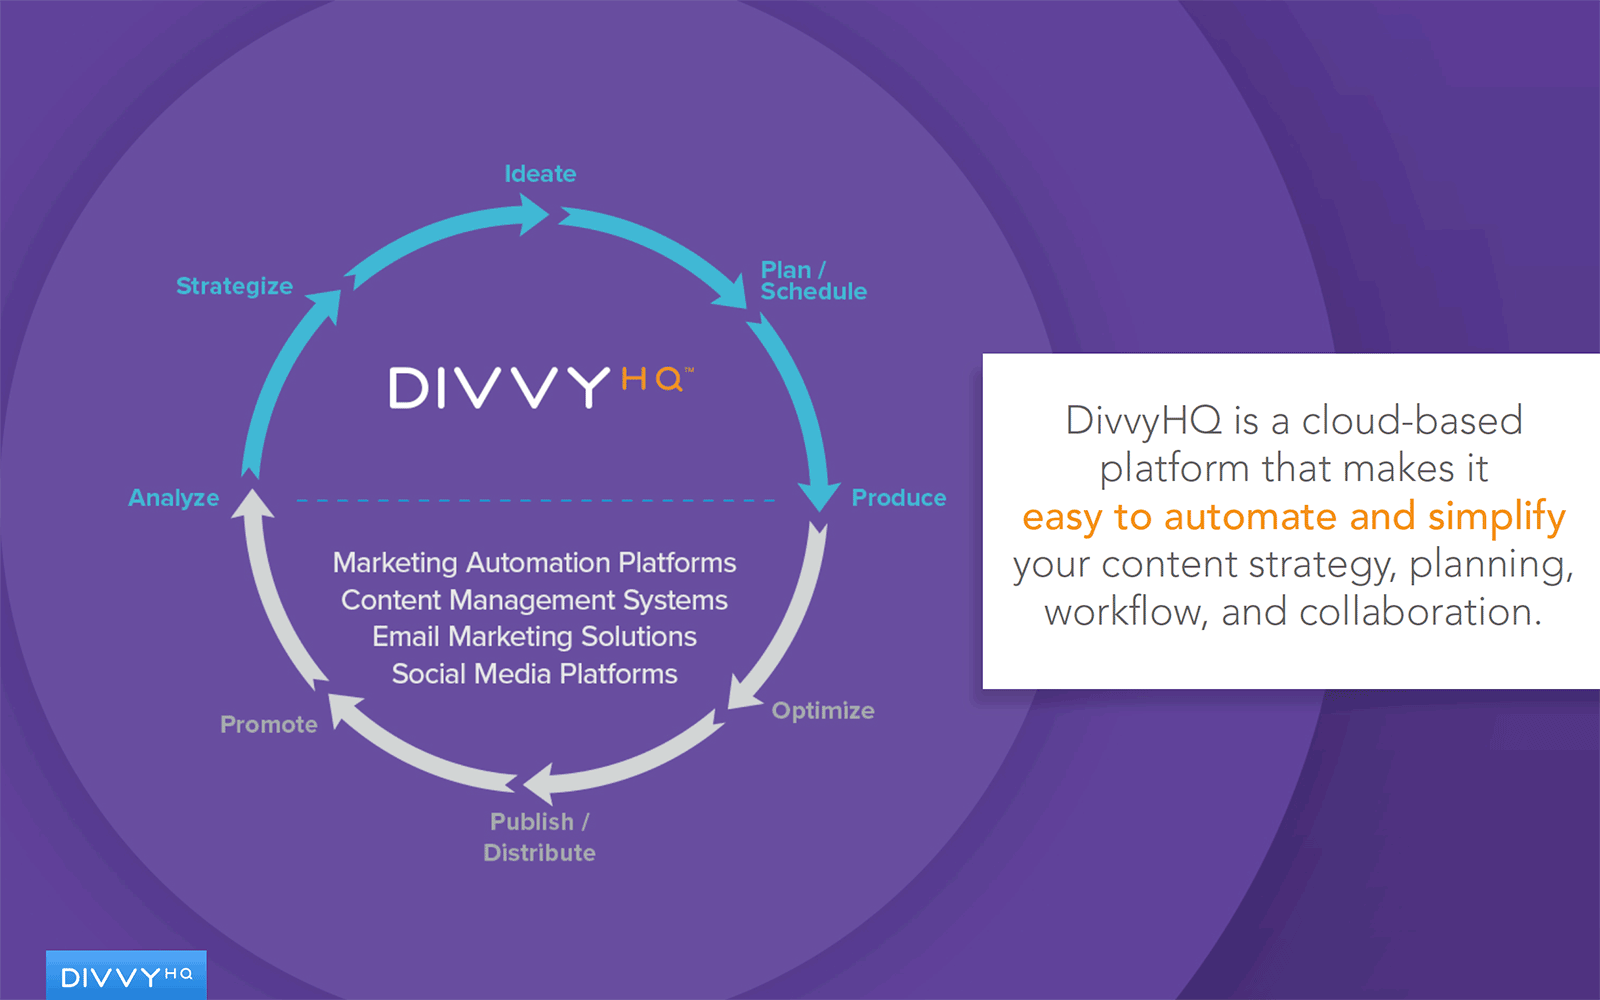 divvyhq content marketing process workflow